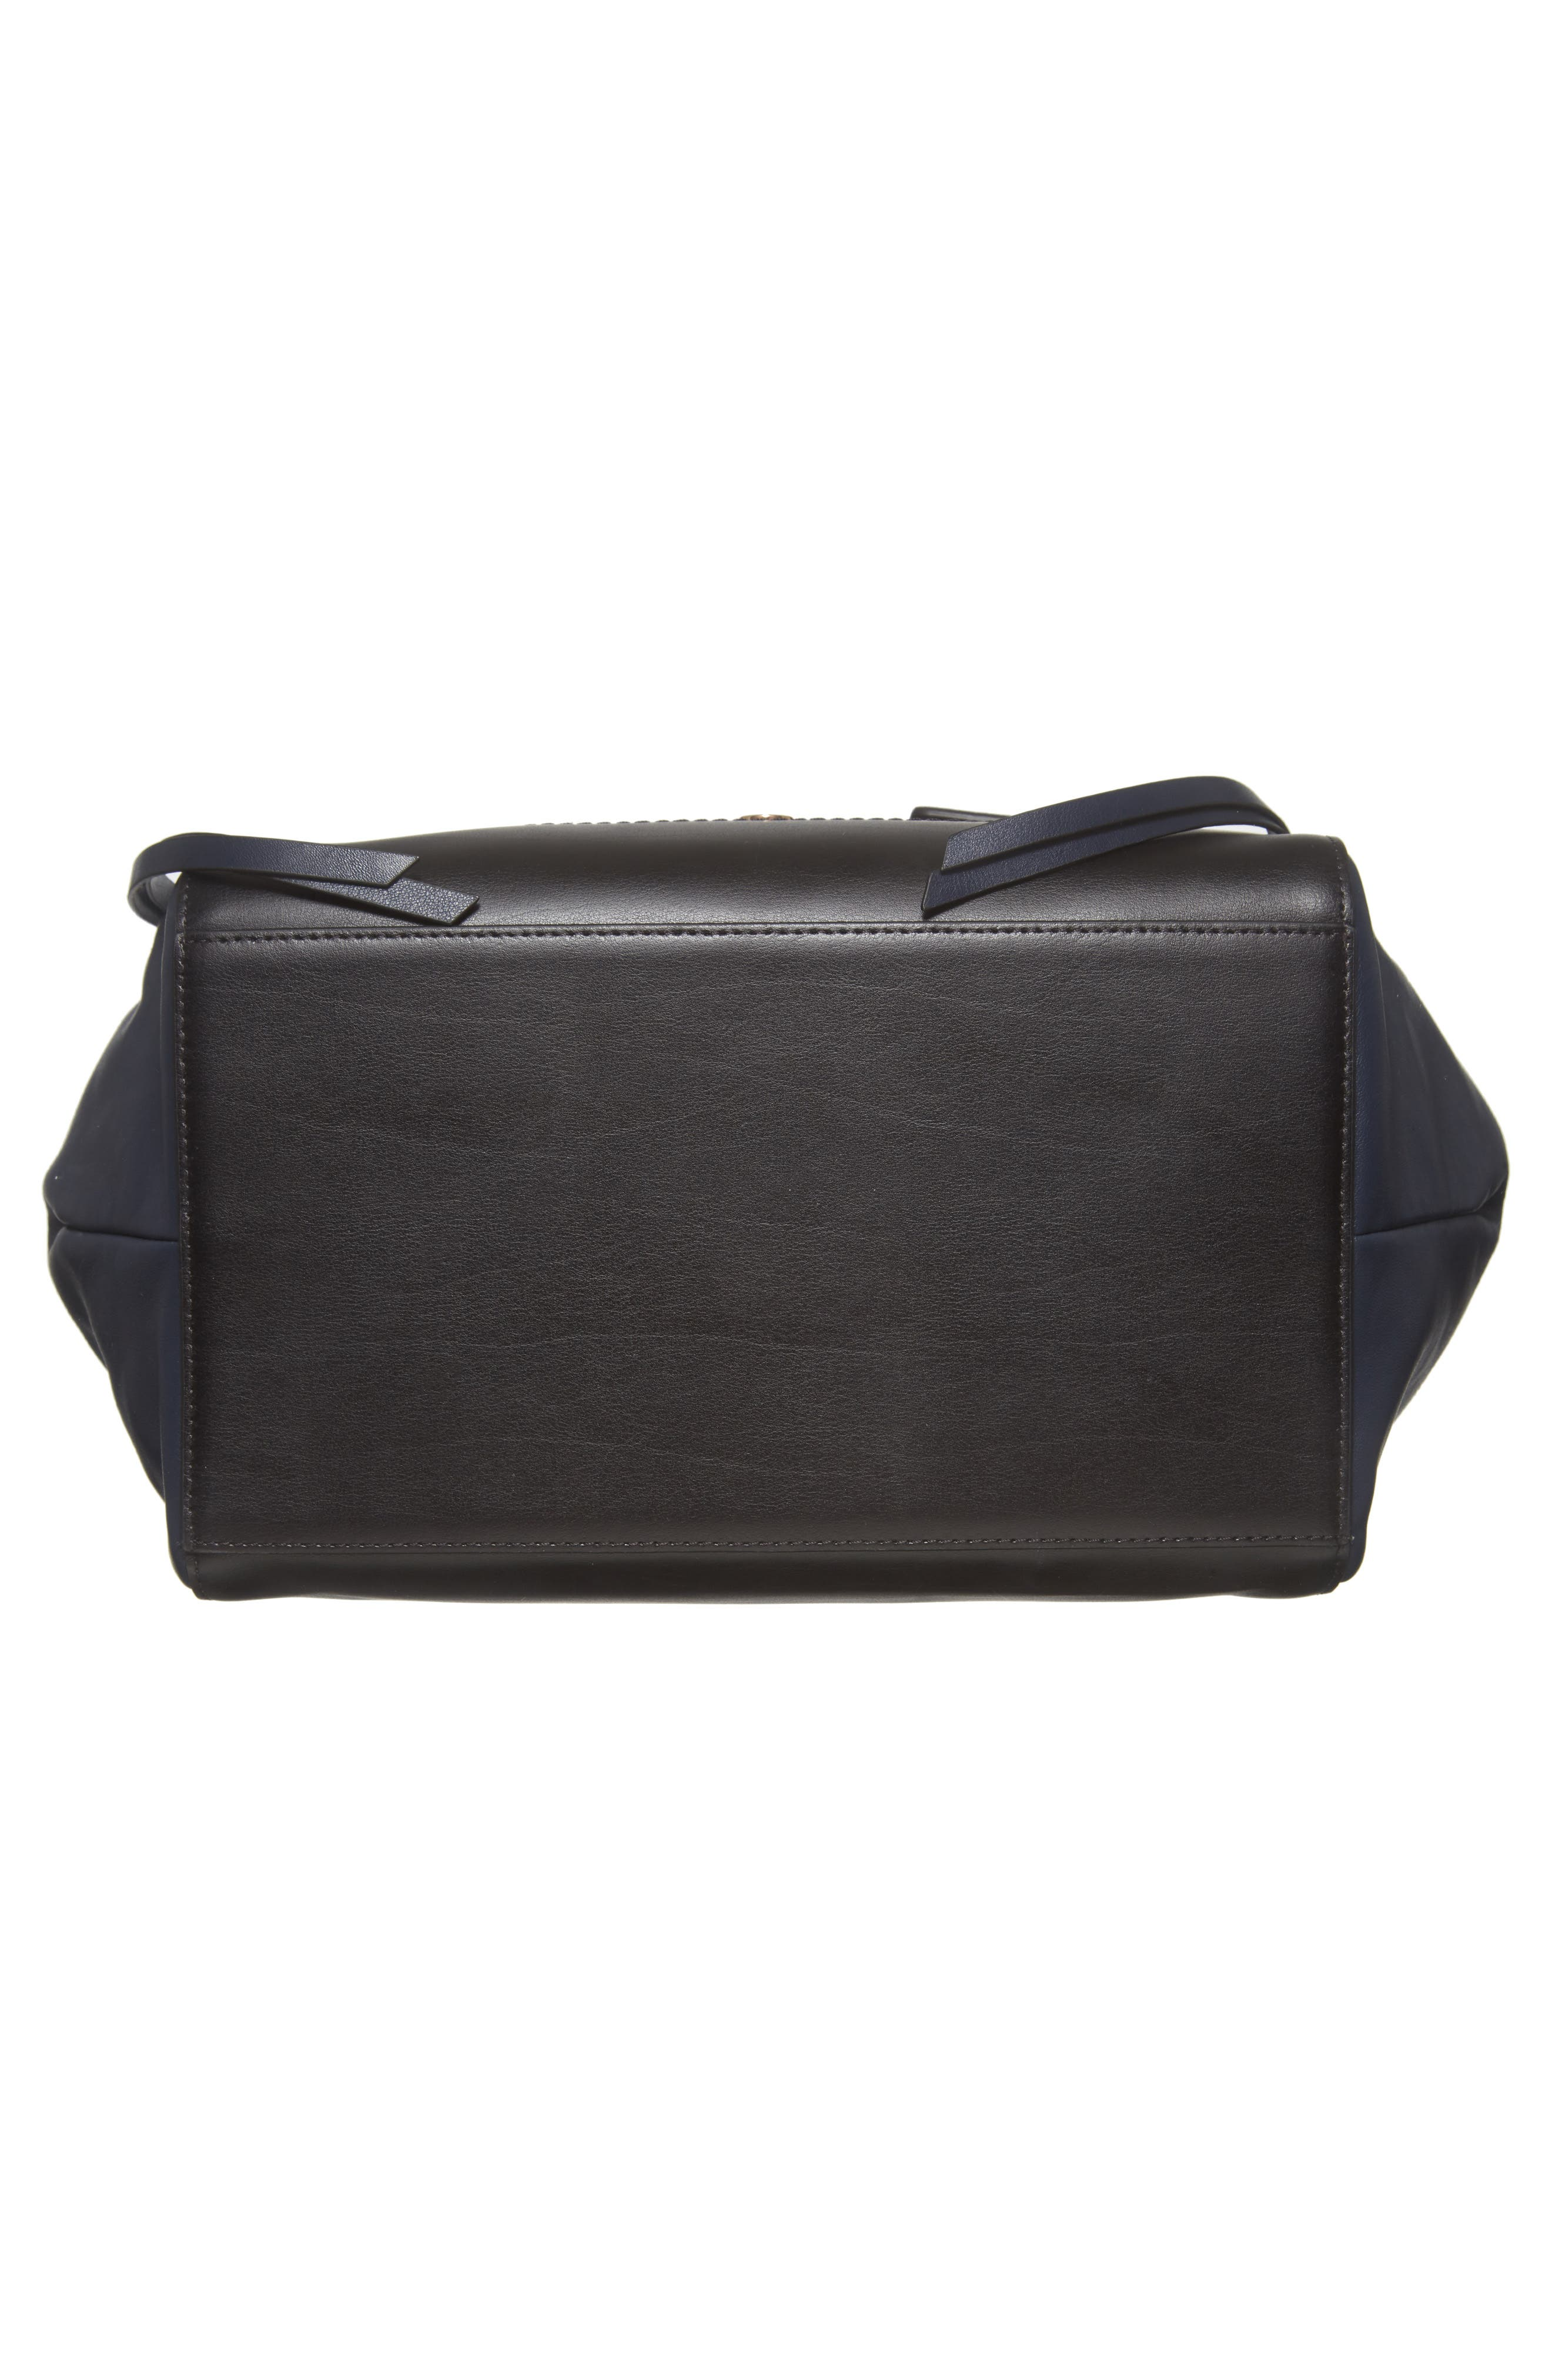 Downtown Charlize RFID Leather Tote,                             Alternate thumbnail 17, color,